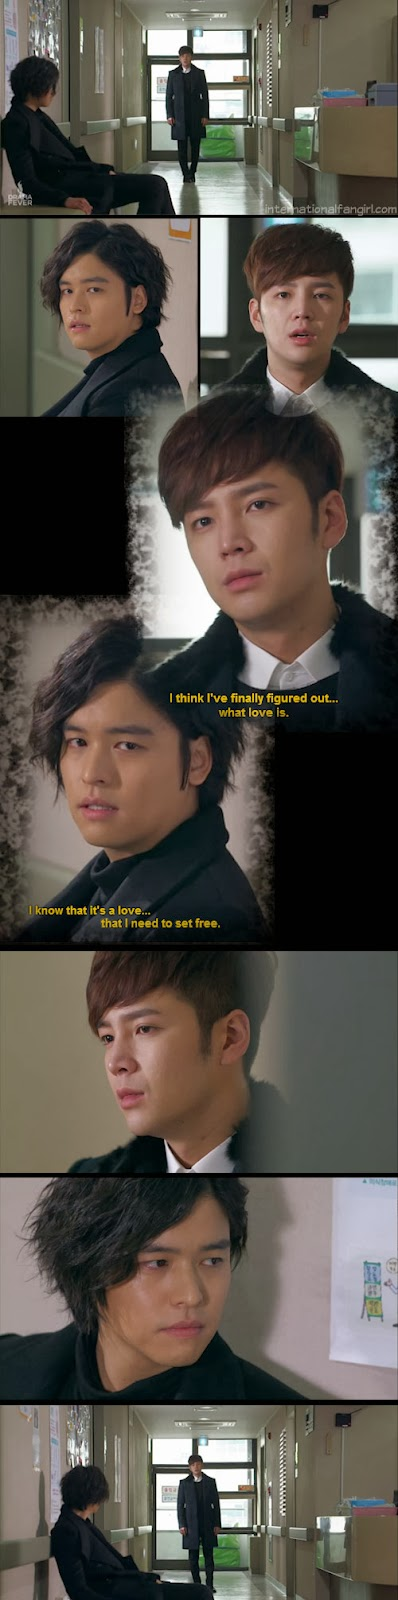 Jang Geun Suk as Dok Go Ma Te and Lee Jang Woo as David Choi, share an emotional scene in a hospital corridor in Bel Ami aka Pretty Man.